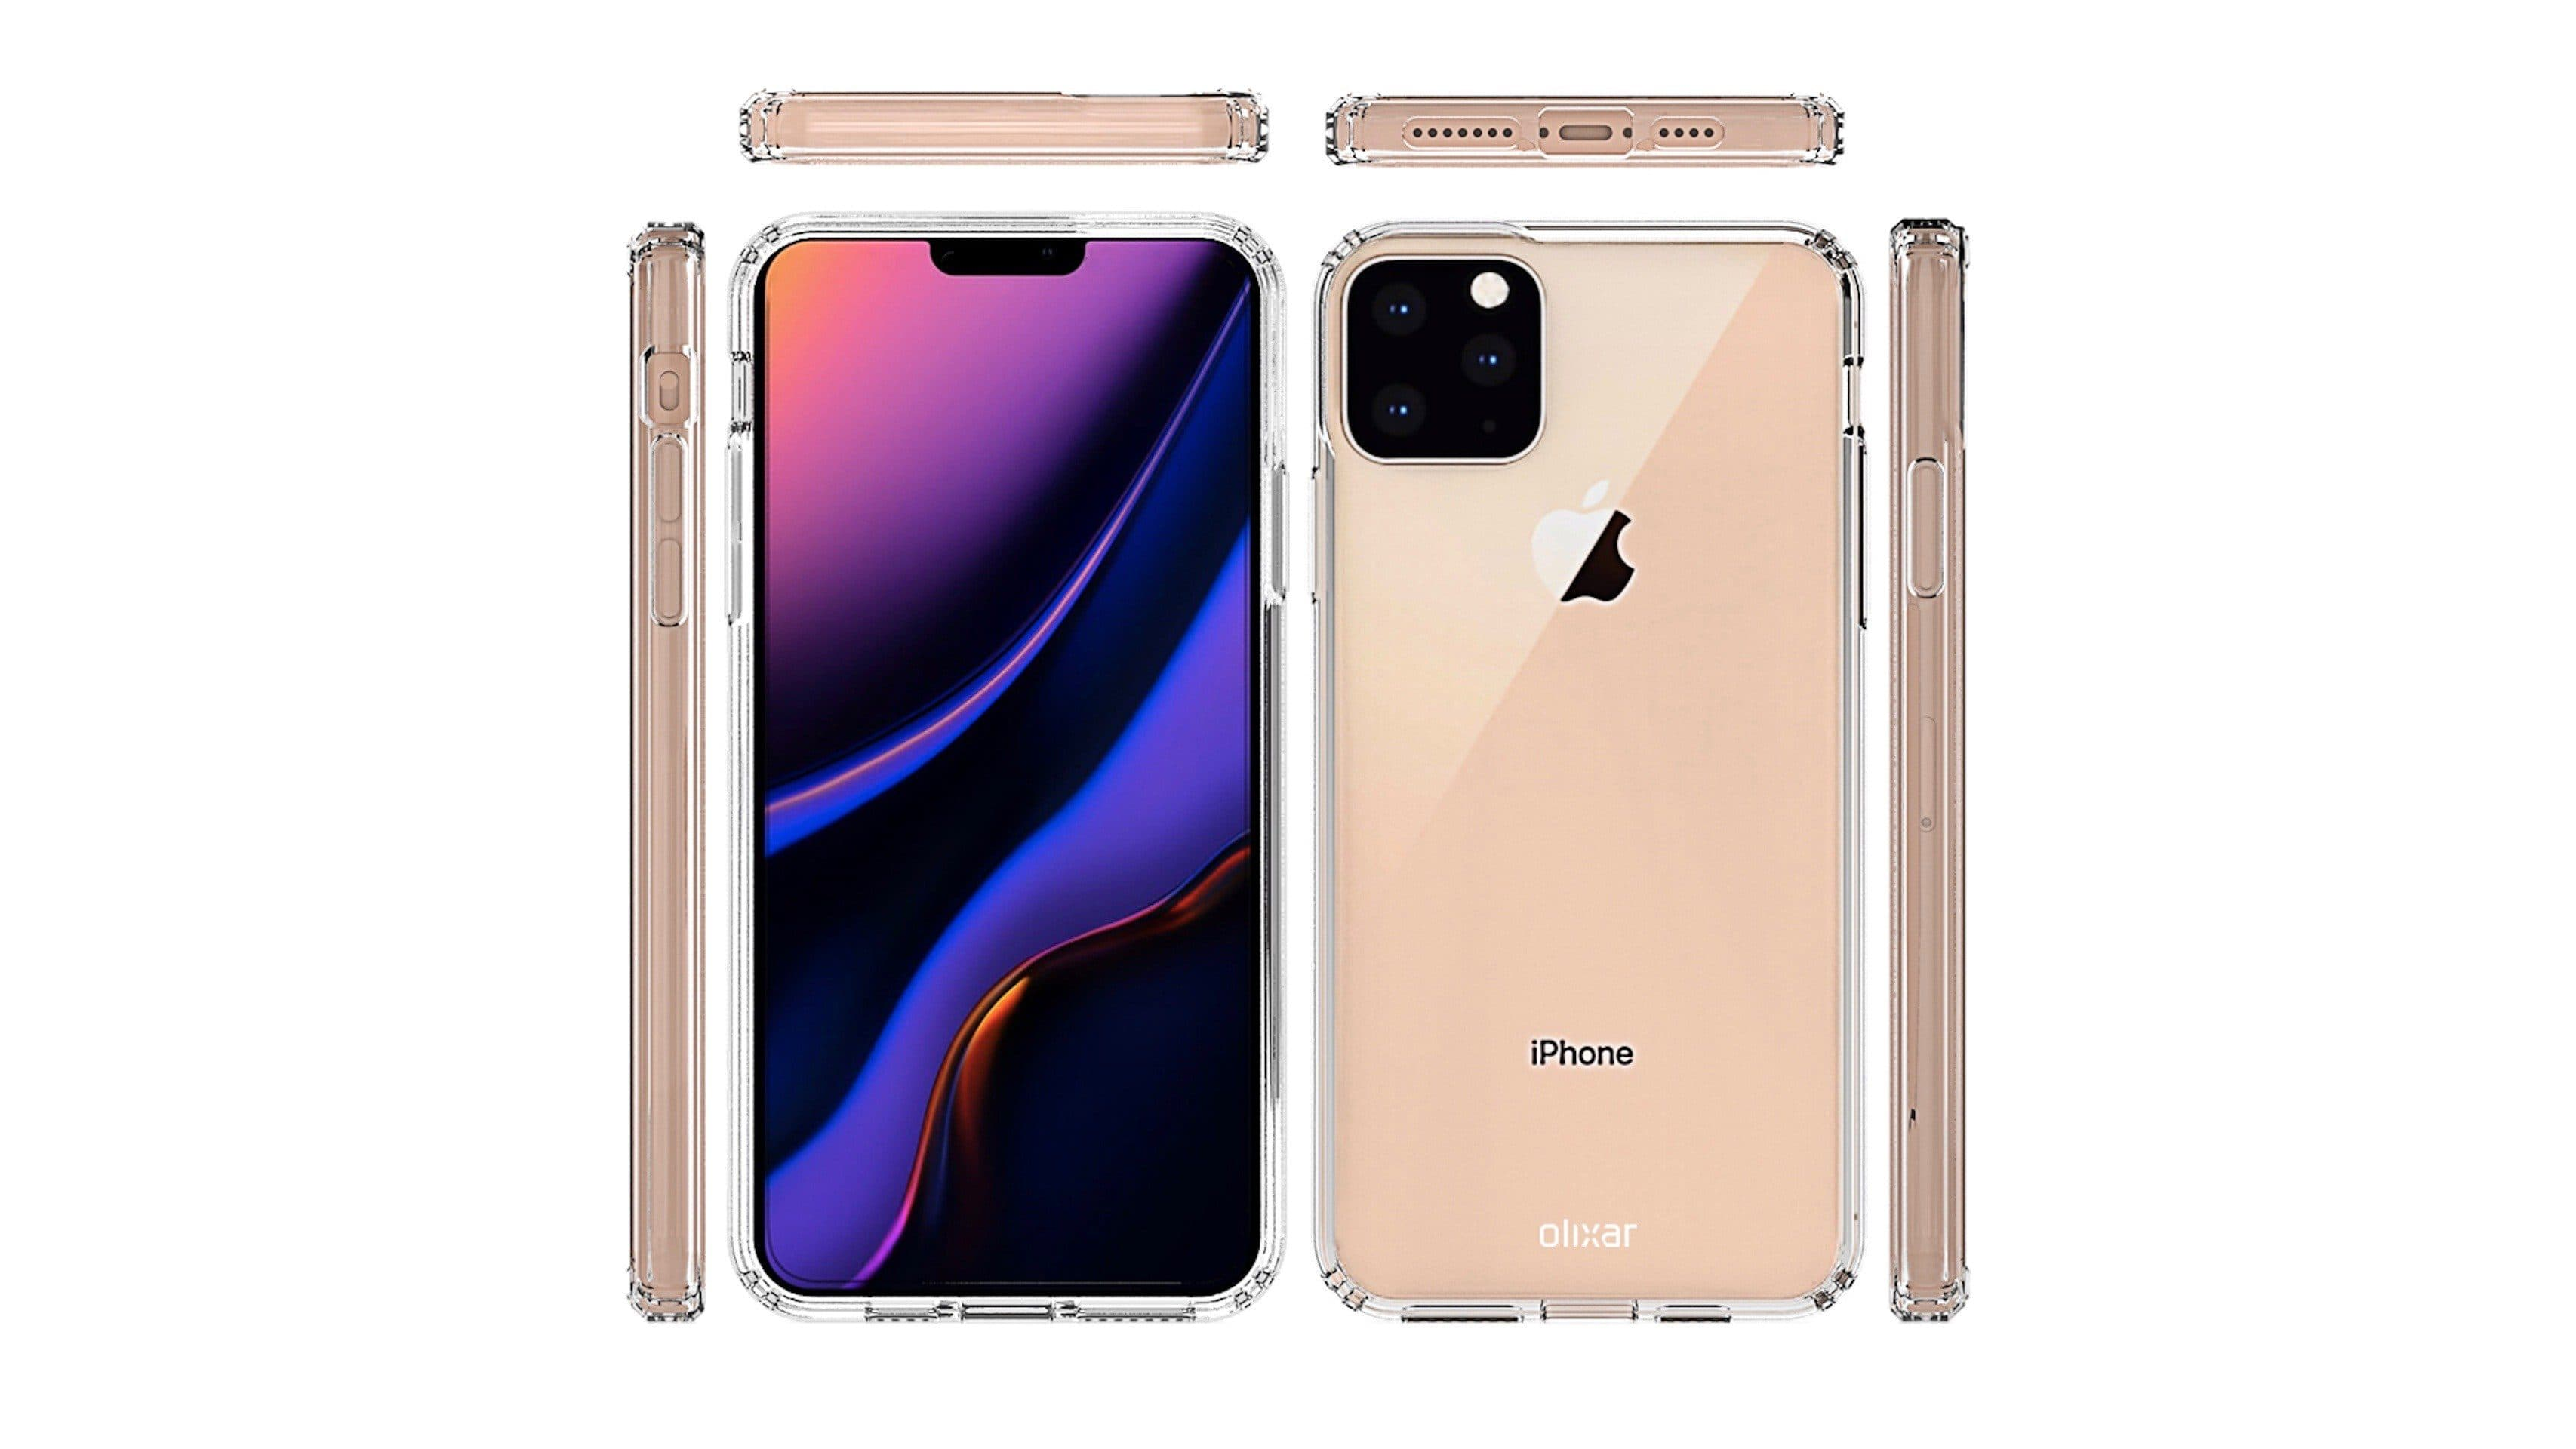 Case renders of the rumored iPhone 11 offer limited details